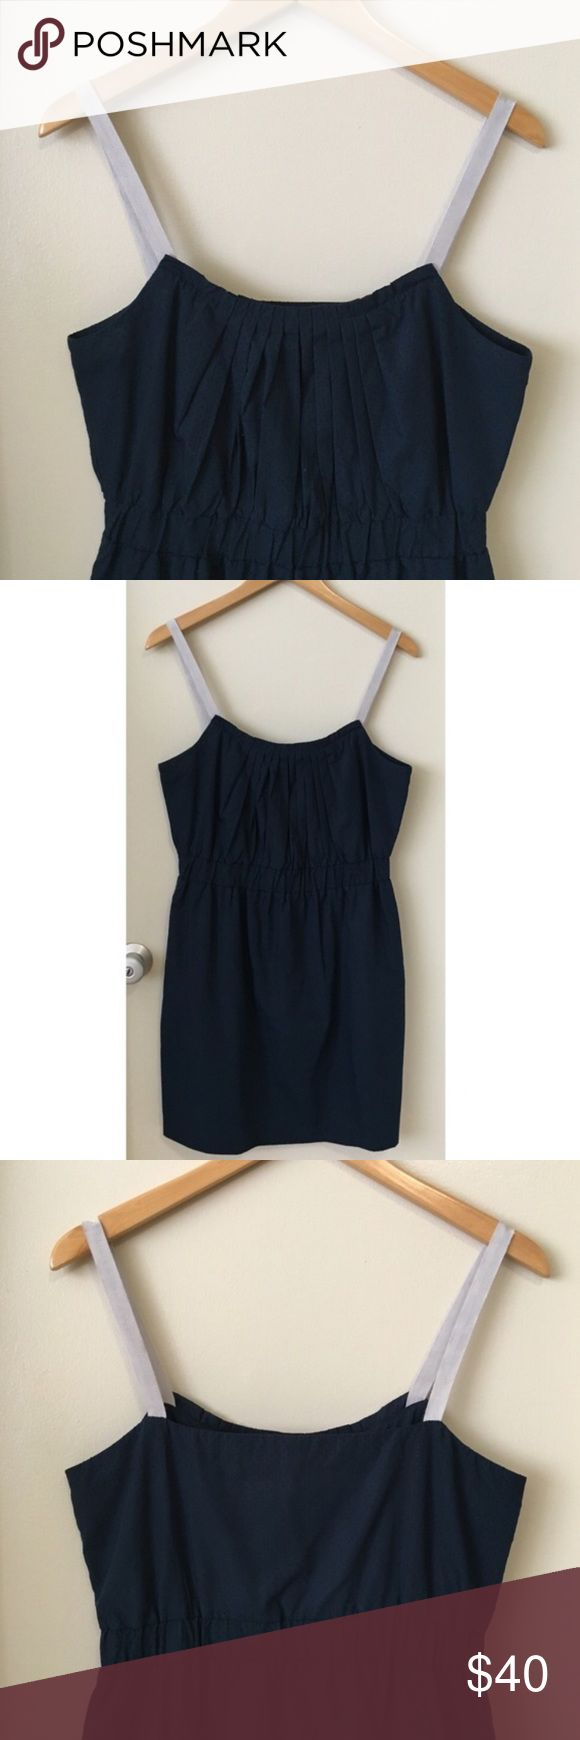 Navy GAP Dress Gorgeous navy GAP dress, worn once and in excellent condition GAP Dresses